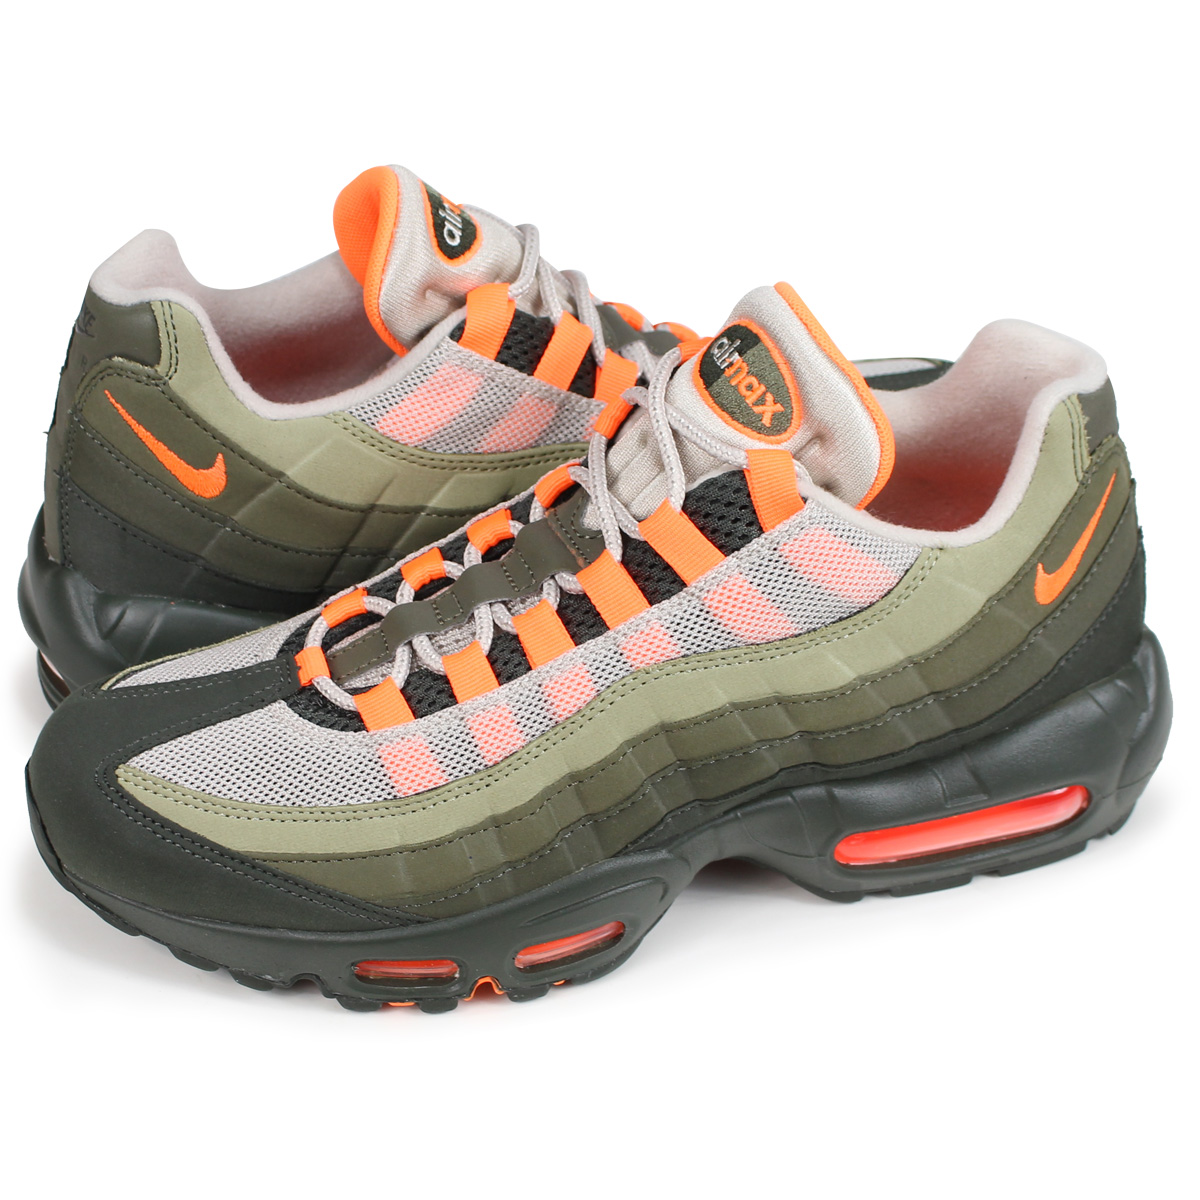 info for fd5d8 9c6b1 NIKE AIR MAX 95 OG Kie Ney AMAX 95 sneakers men gap Dis AT2865-200 orange  [load planned Shinnyu load in reservation product 9/6 containing]